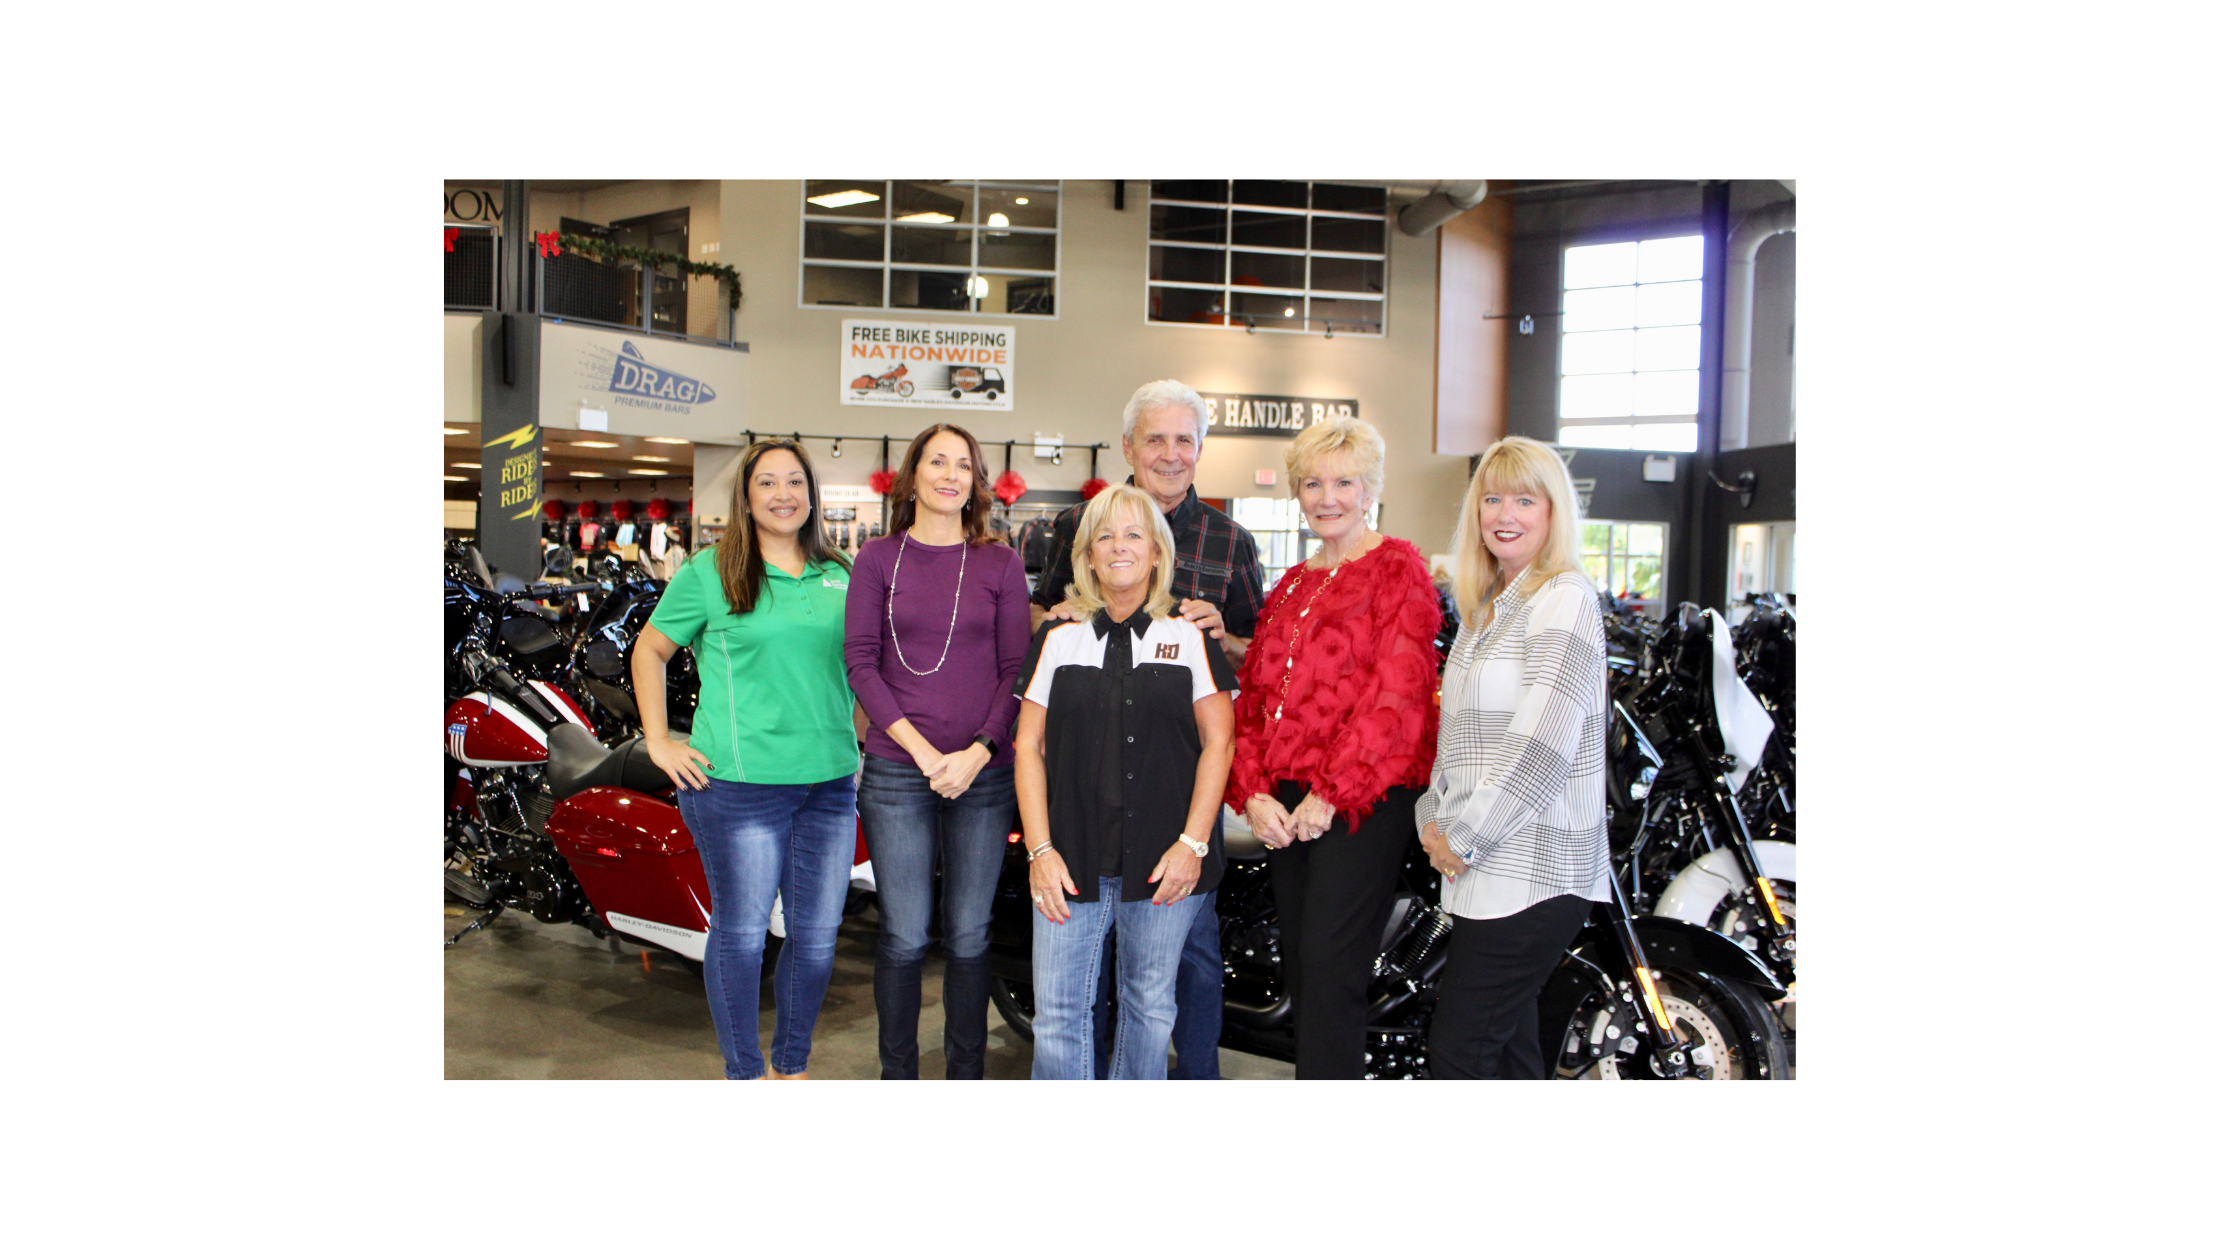 Rockstar Harley-Davidson donates $50,000 to local children's charities